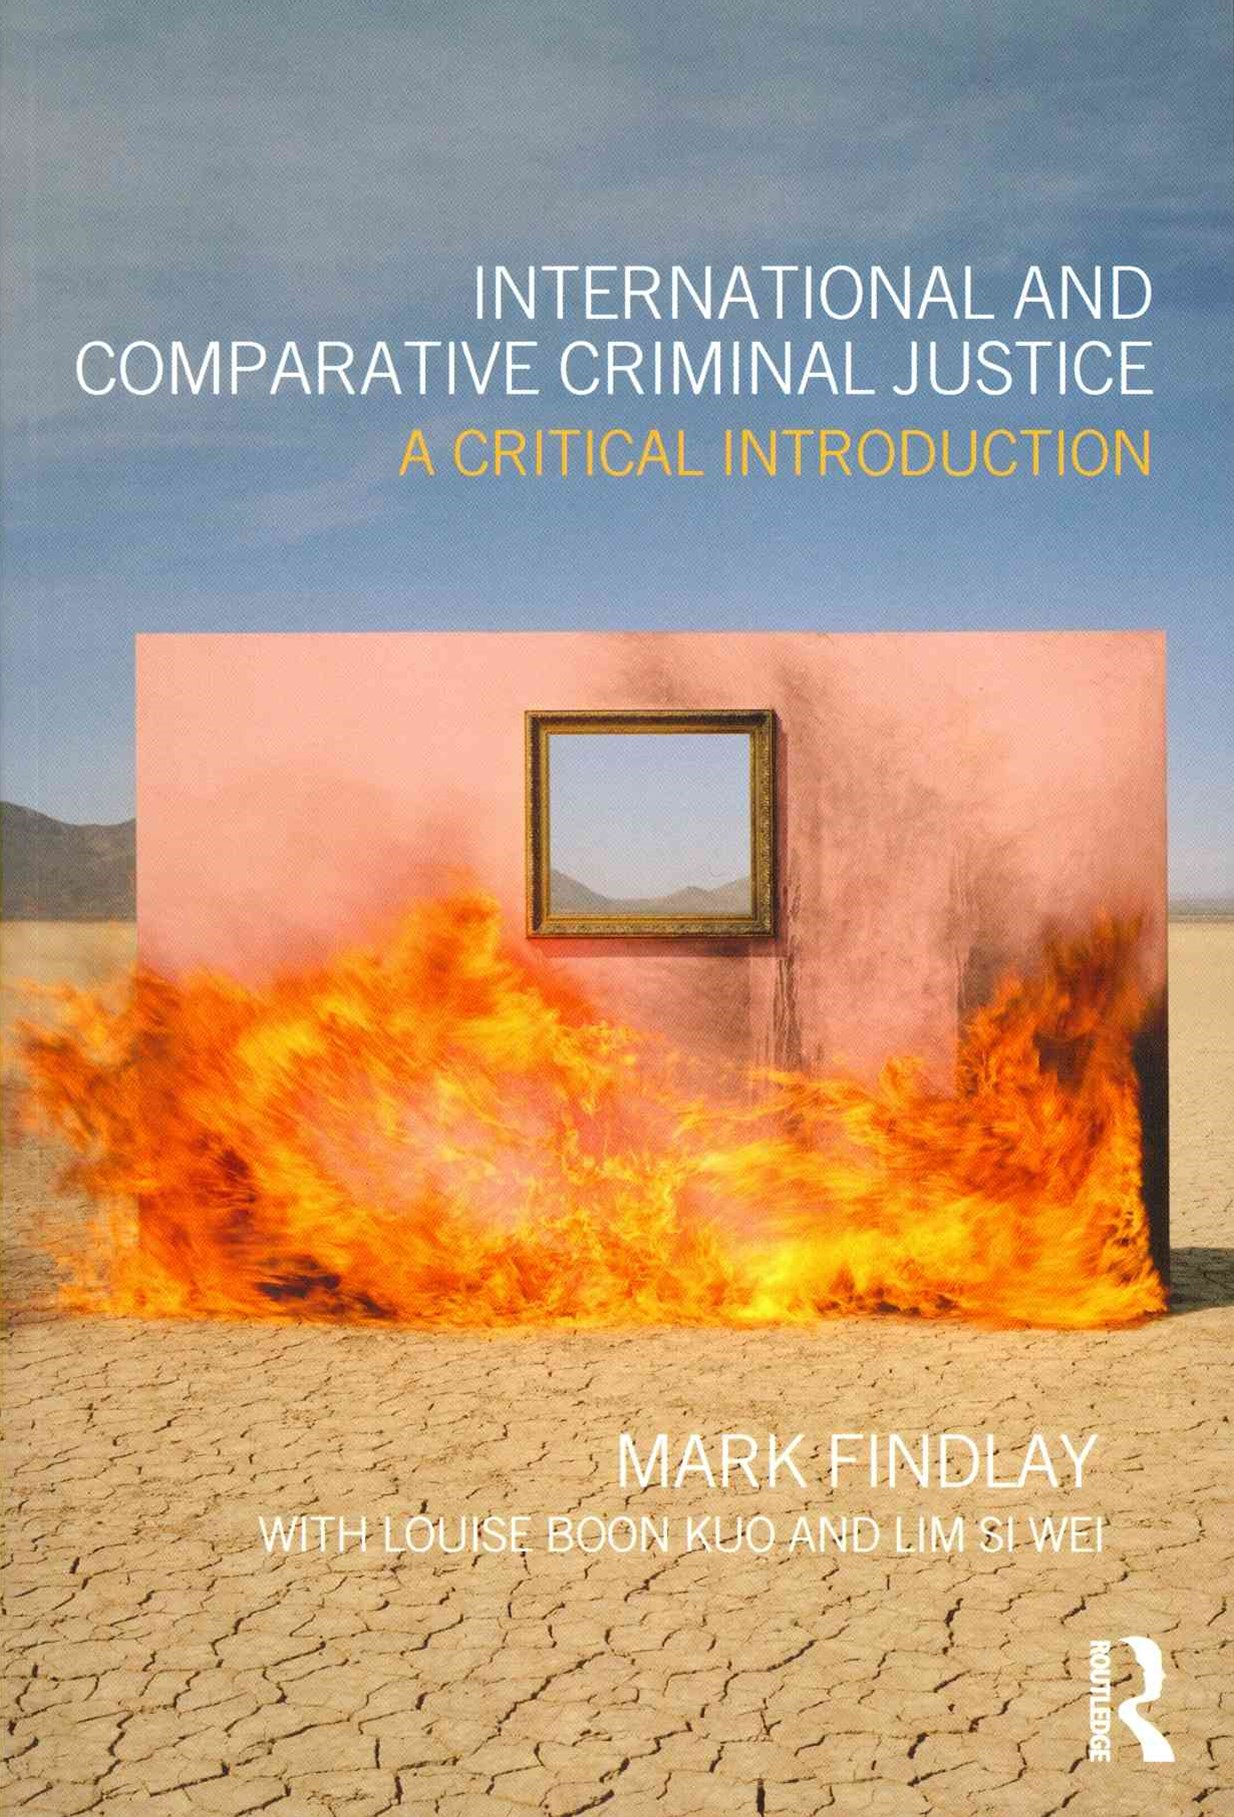 International and Comparative Criminal Justice